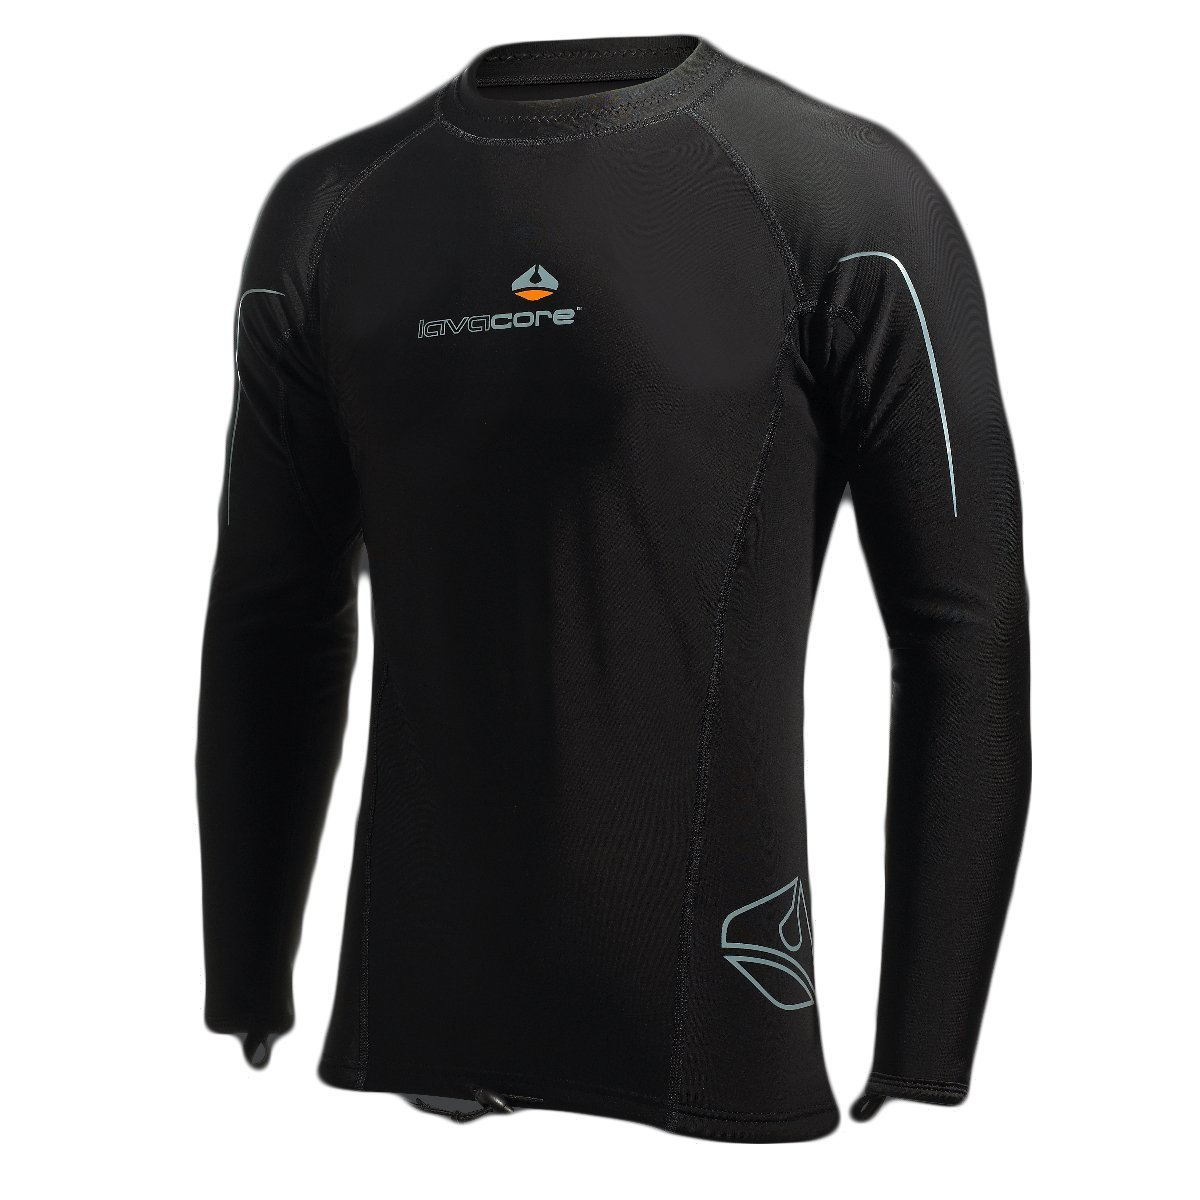 New Mens LavaCore Trilaminate Polytherm Long Sleeve Shirt (Large) for Extreme Watersports by Lavacore